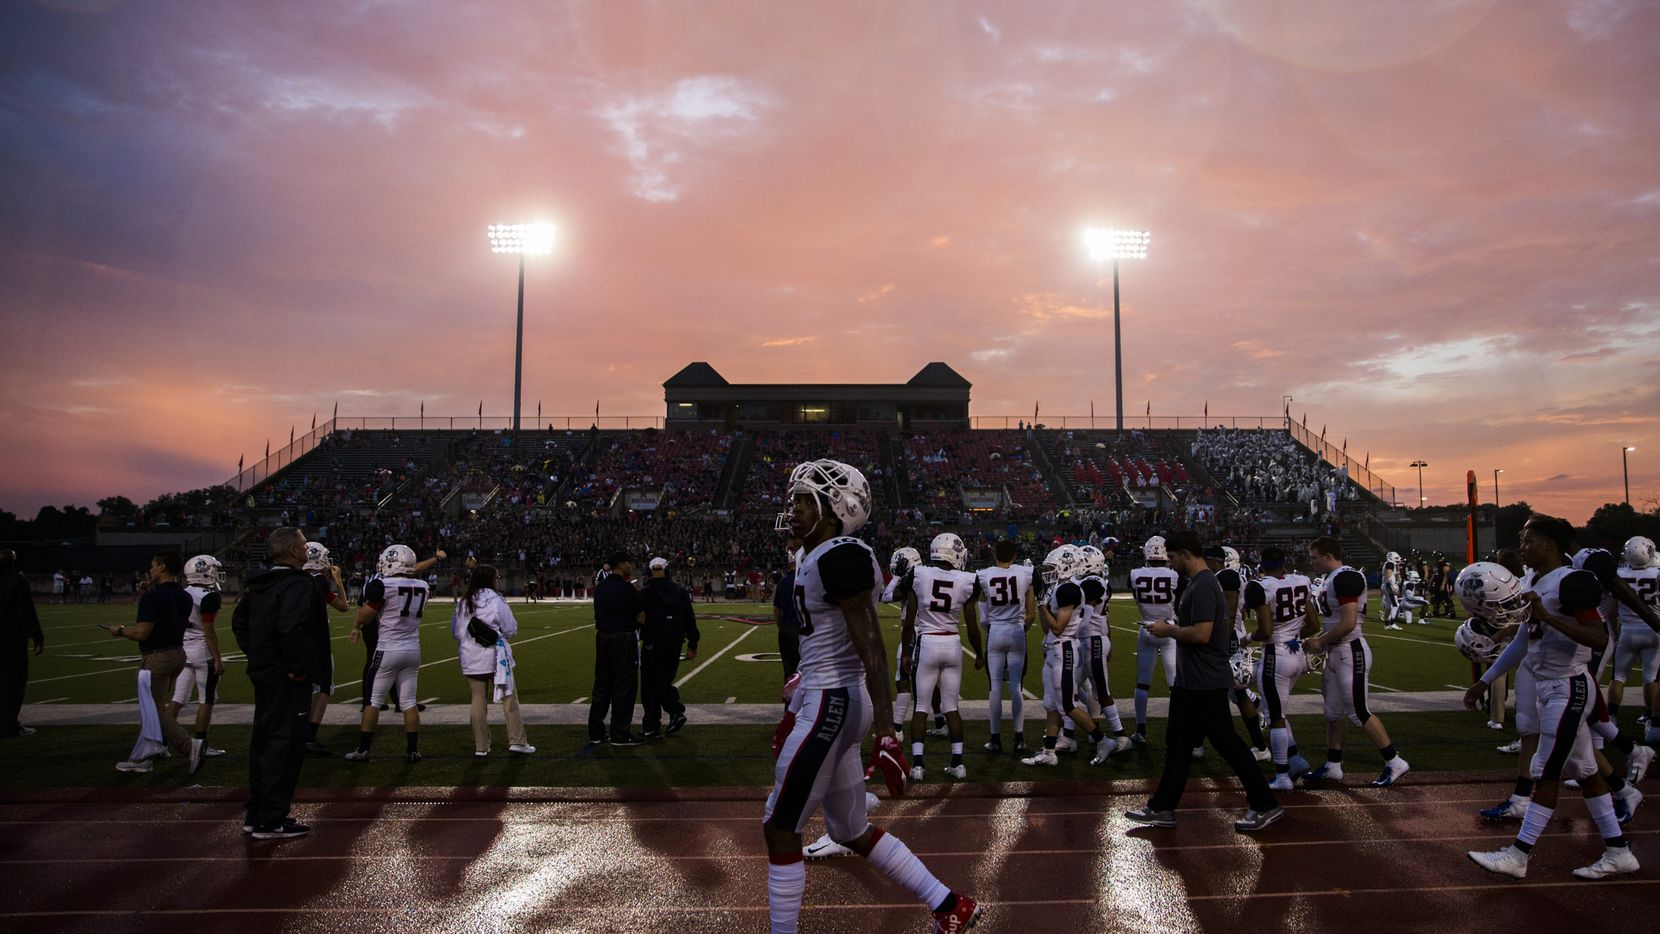 Allen football players walk along the sideline as rain falls and the sun sets during the third quarter of a high school football game between Allen and Coppell on Sept. 14.